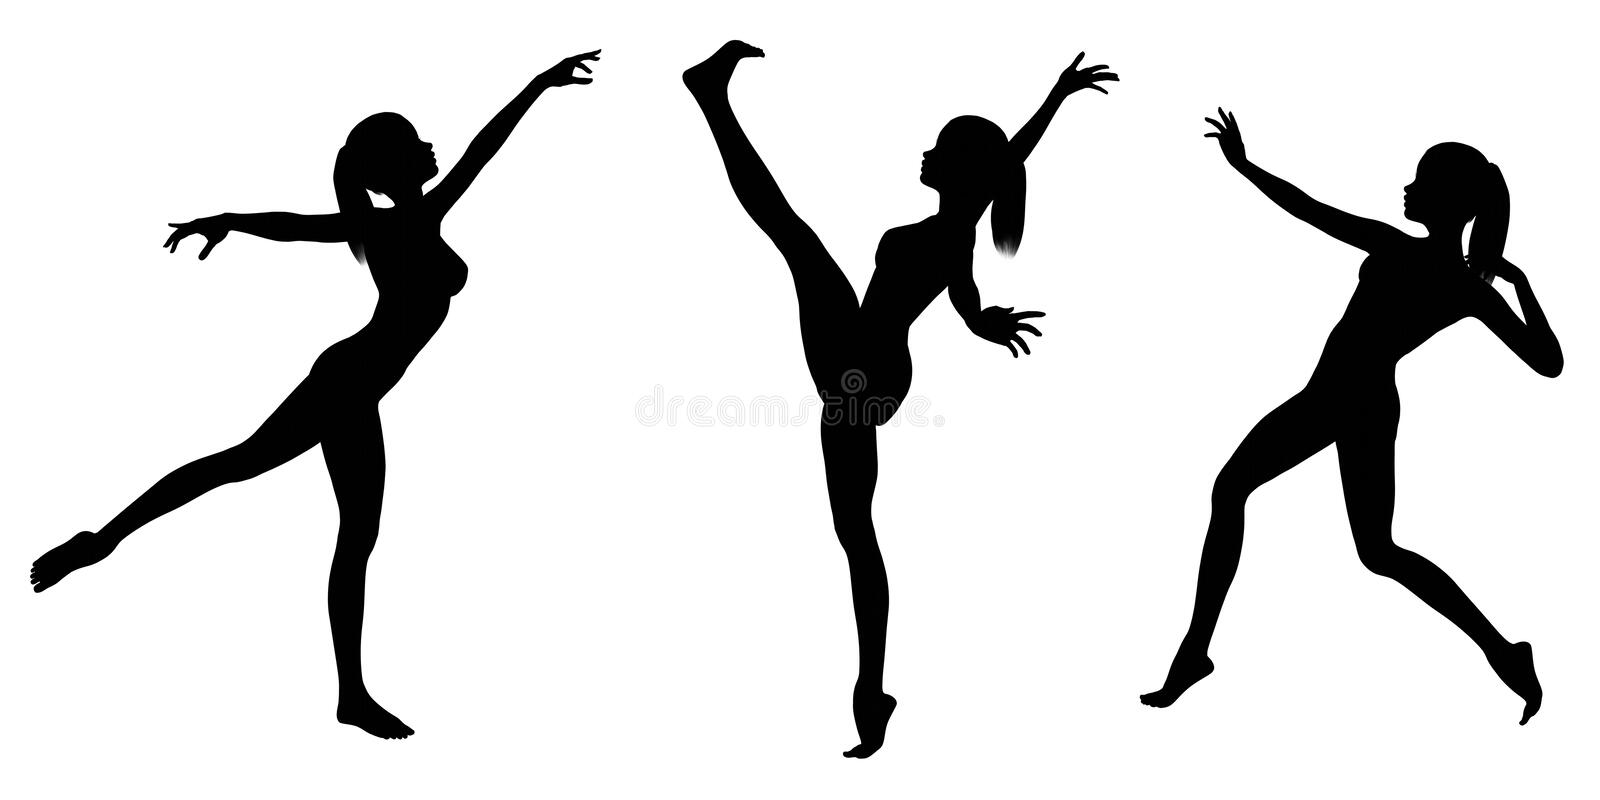 Download Female Gymnast Silhouettes - 1 Stock Illustration - Image: 34084869